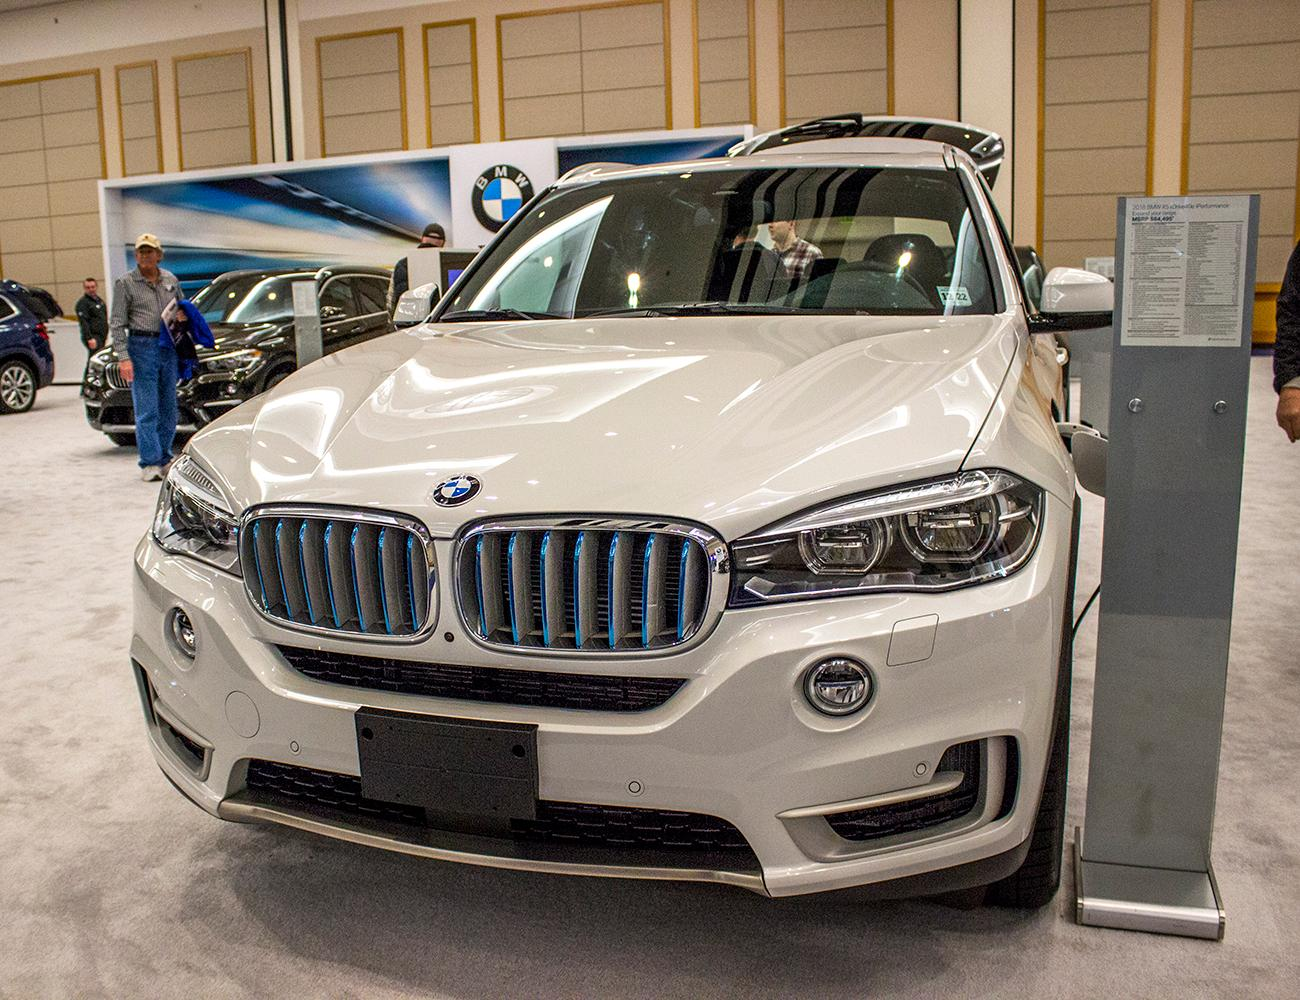 2018 BMW xDrive40e - The Portland International Auto Show began at the Oregon Convention Center on Jan. 25, 2018. The event drew prospective buyers and others who enjoyed looking at and comparing vehicles. Photo by Amanda Butt